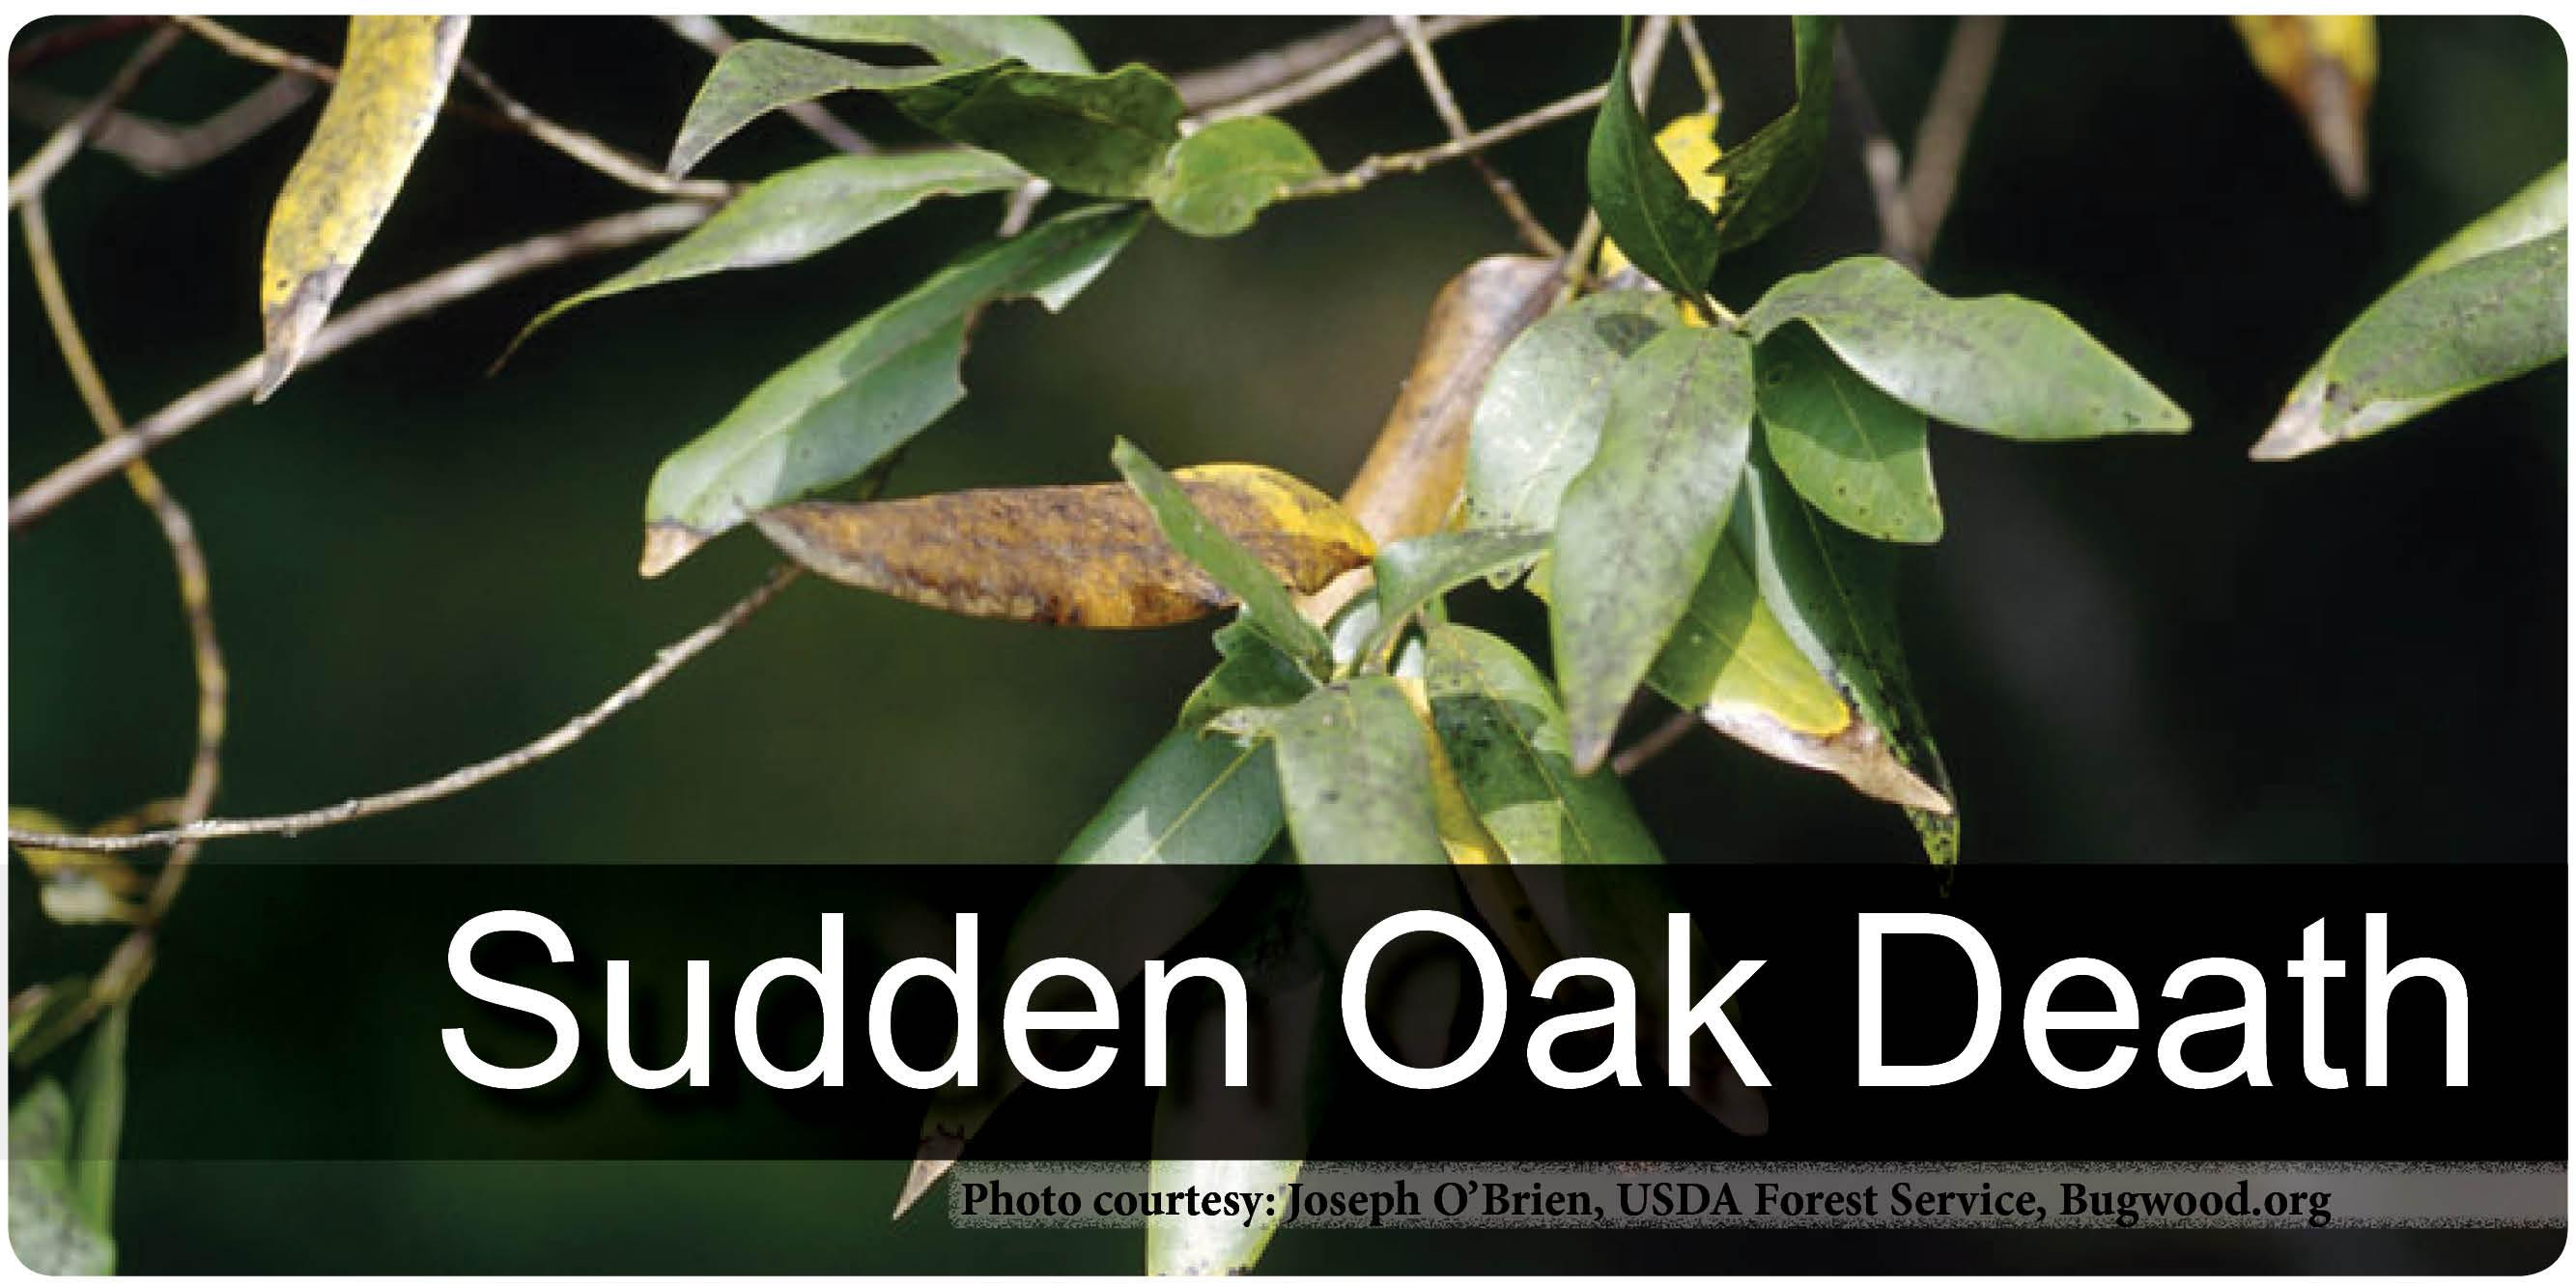 Sudden Oak Death